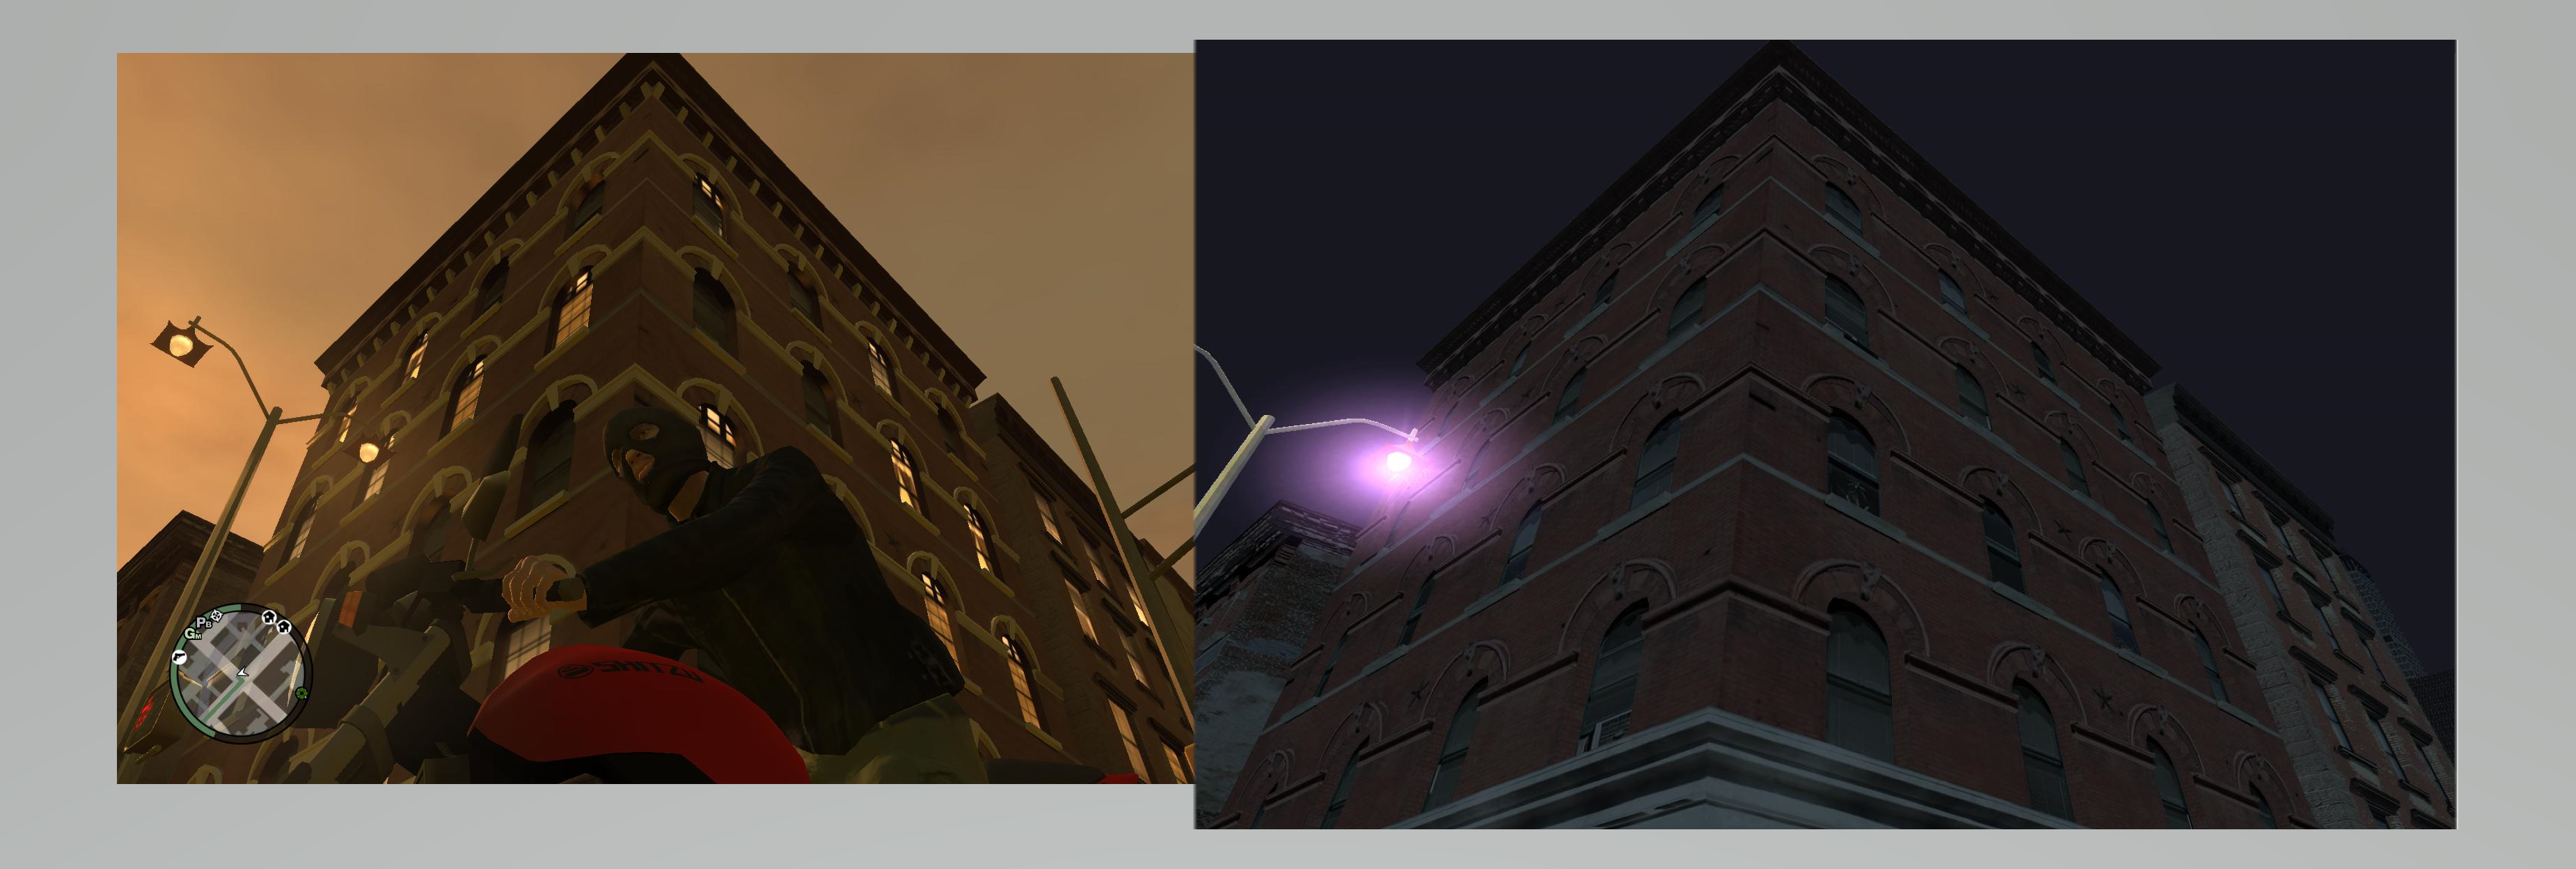 gallery3.png - -